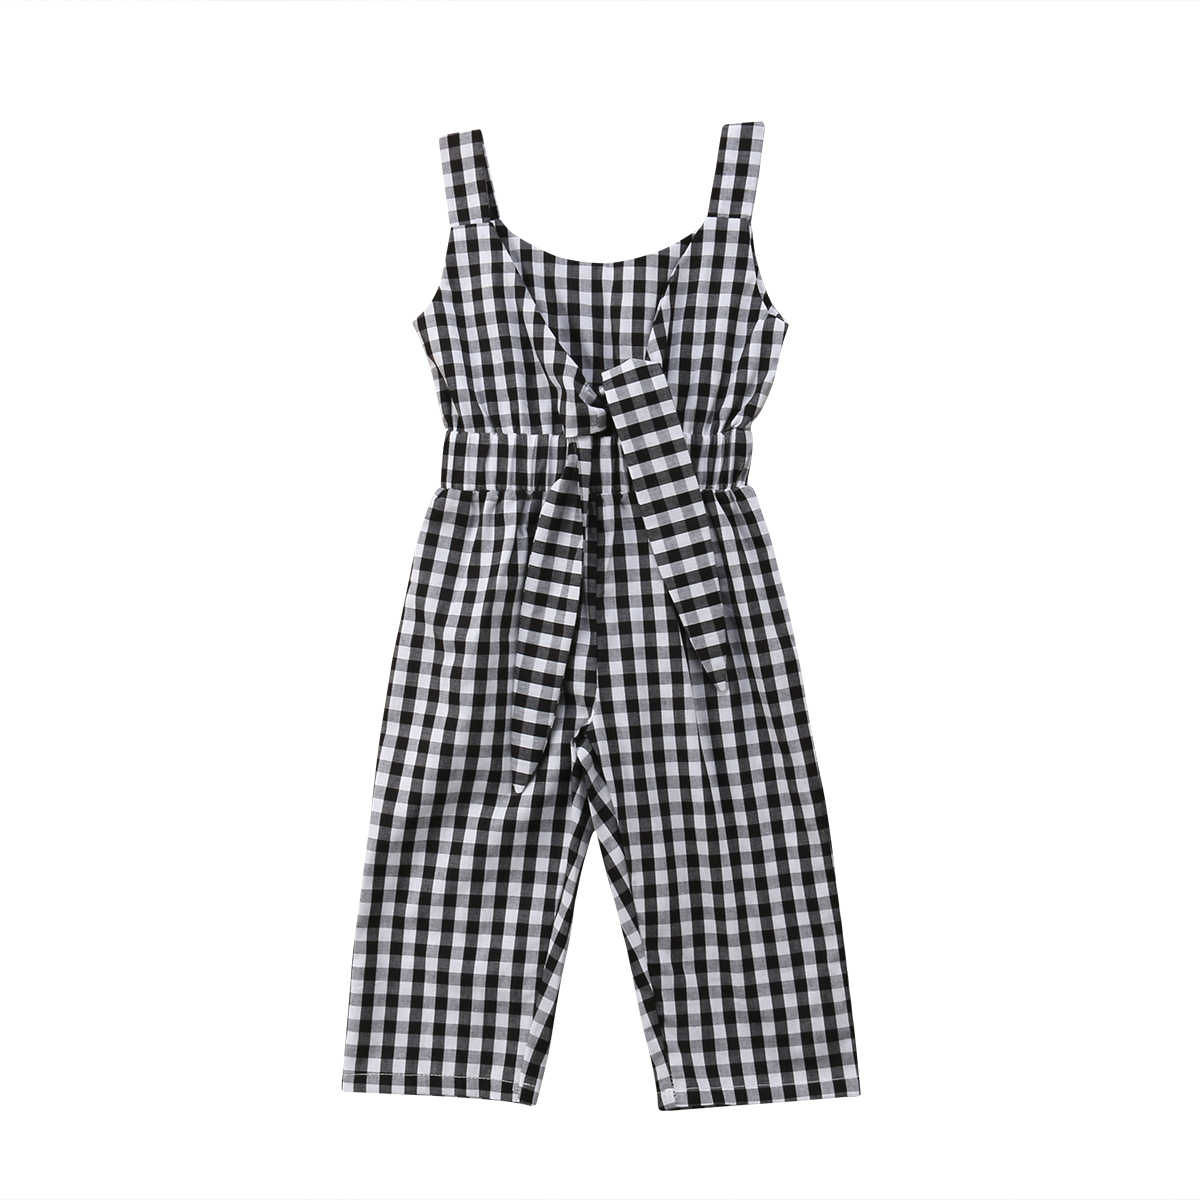 80e8b86332c3 Detail Feedback Questions about Newborn Baby Girl Clothing Plaids ...